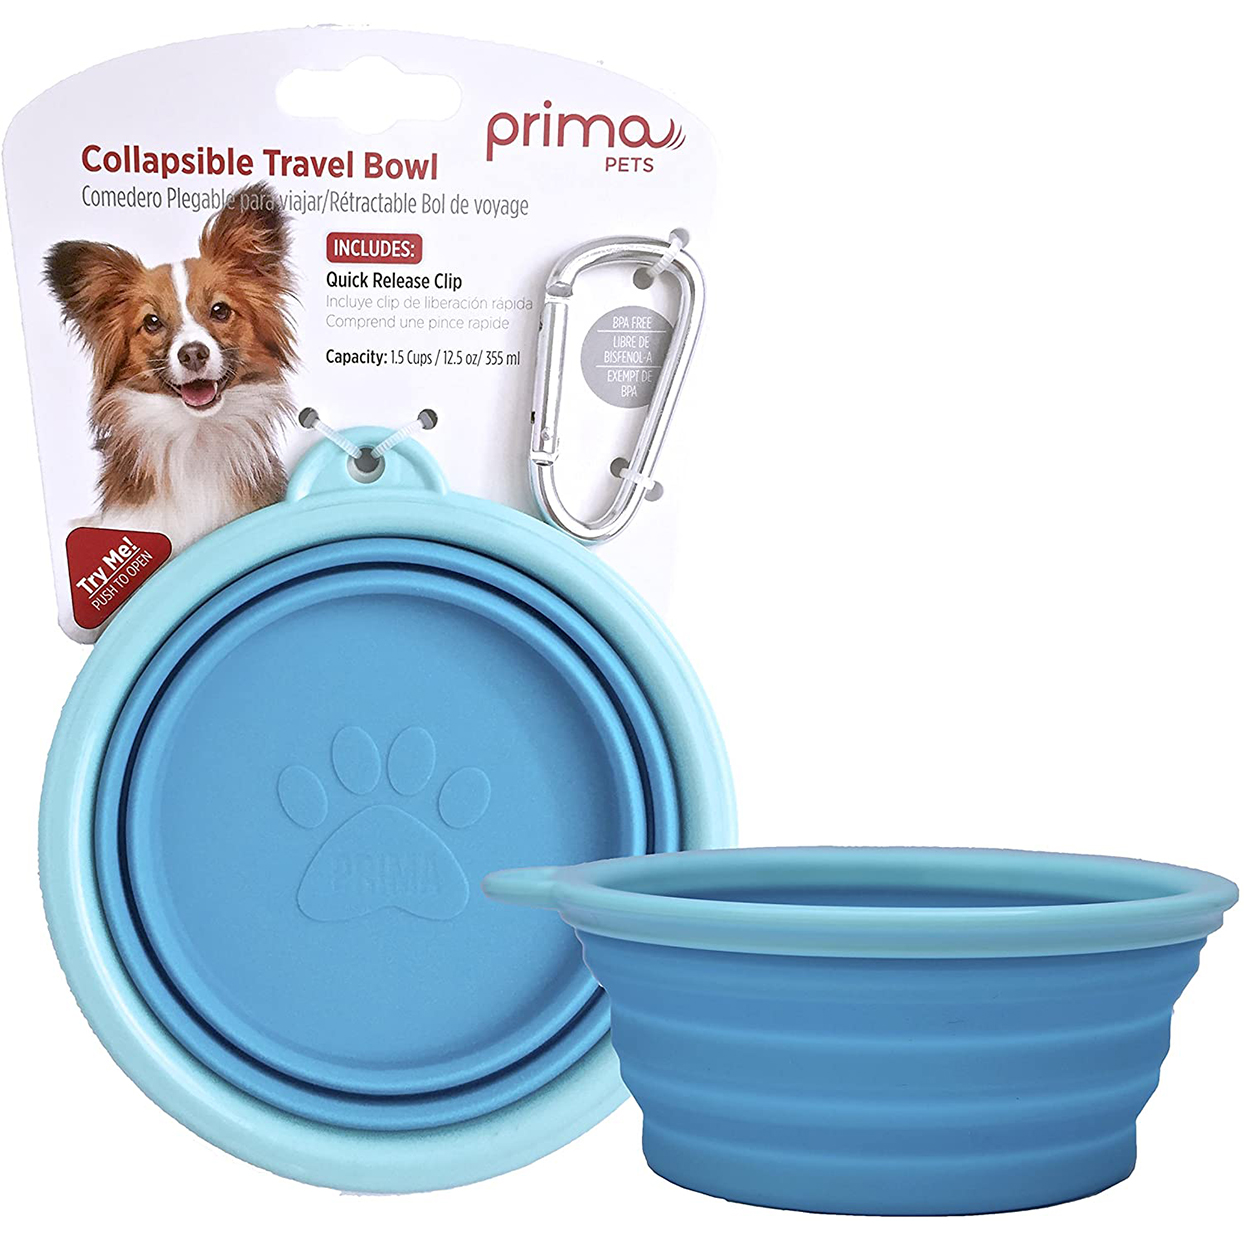 prima pets collapsible silicone water bowl